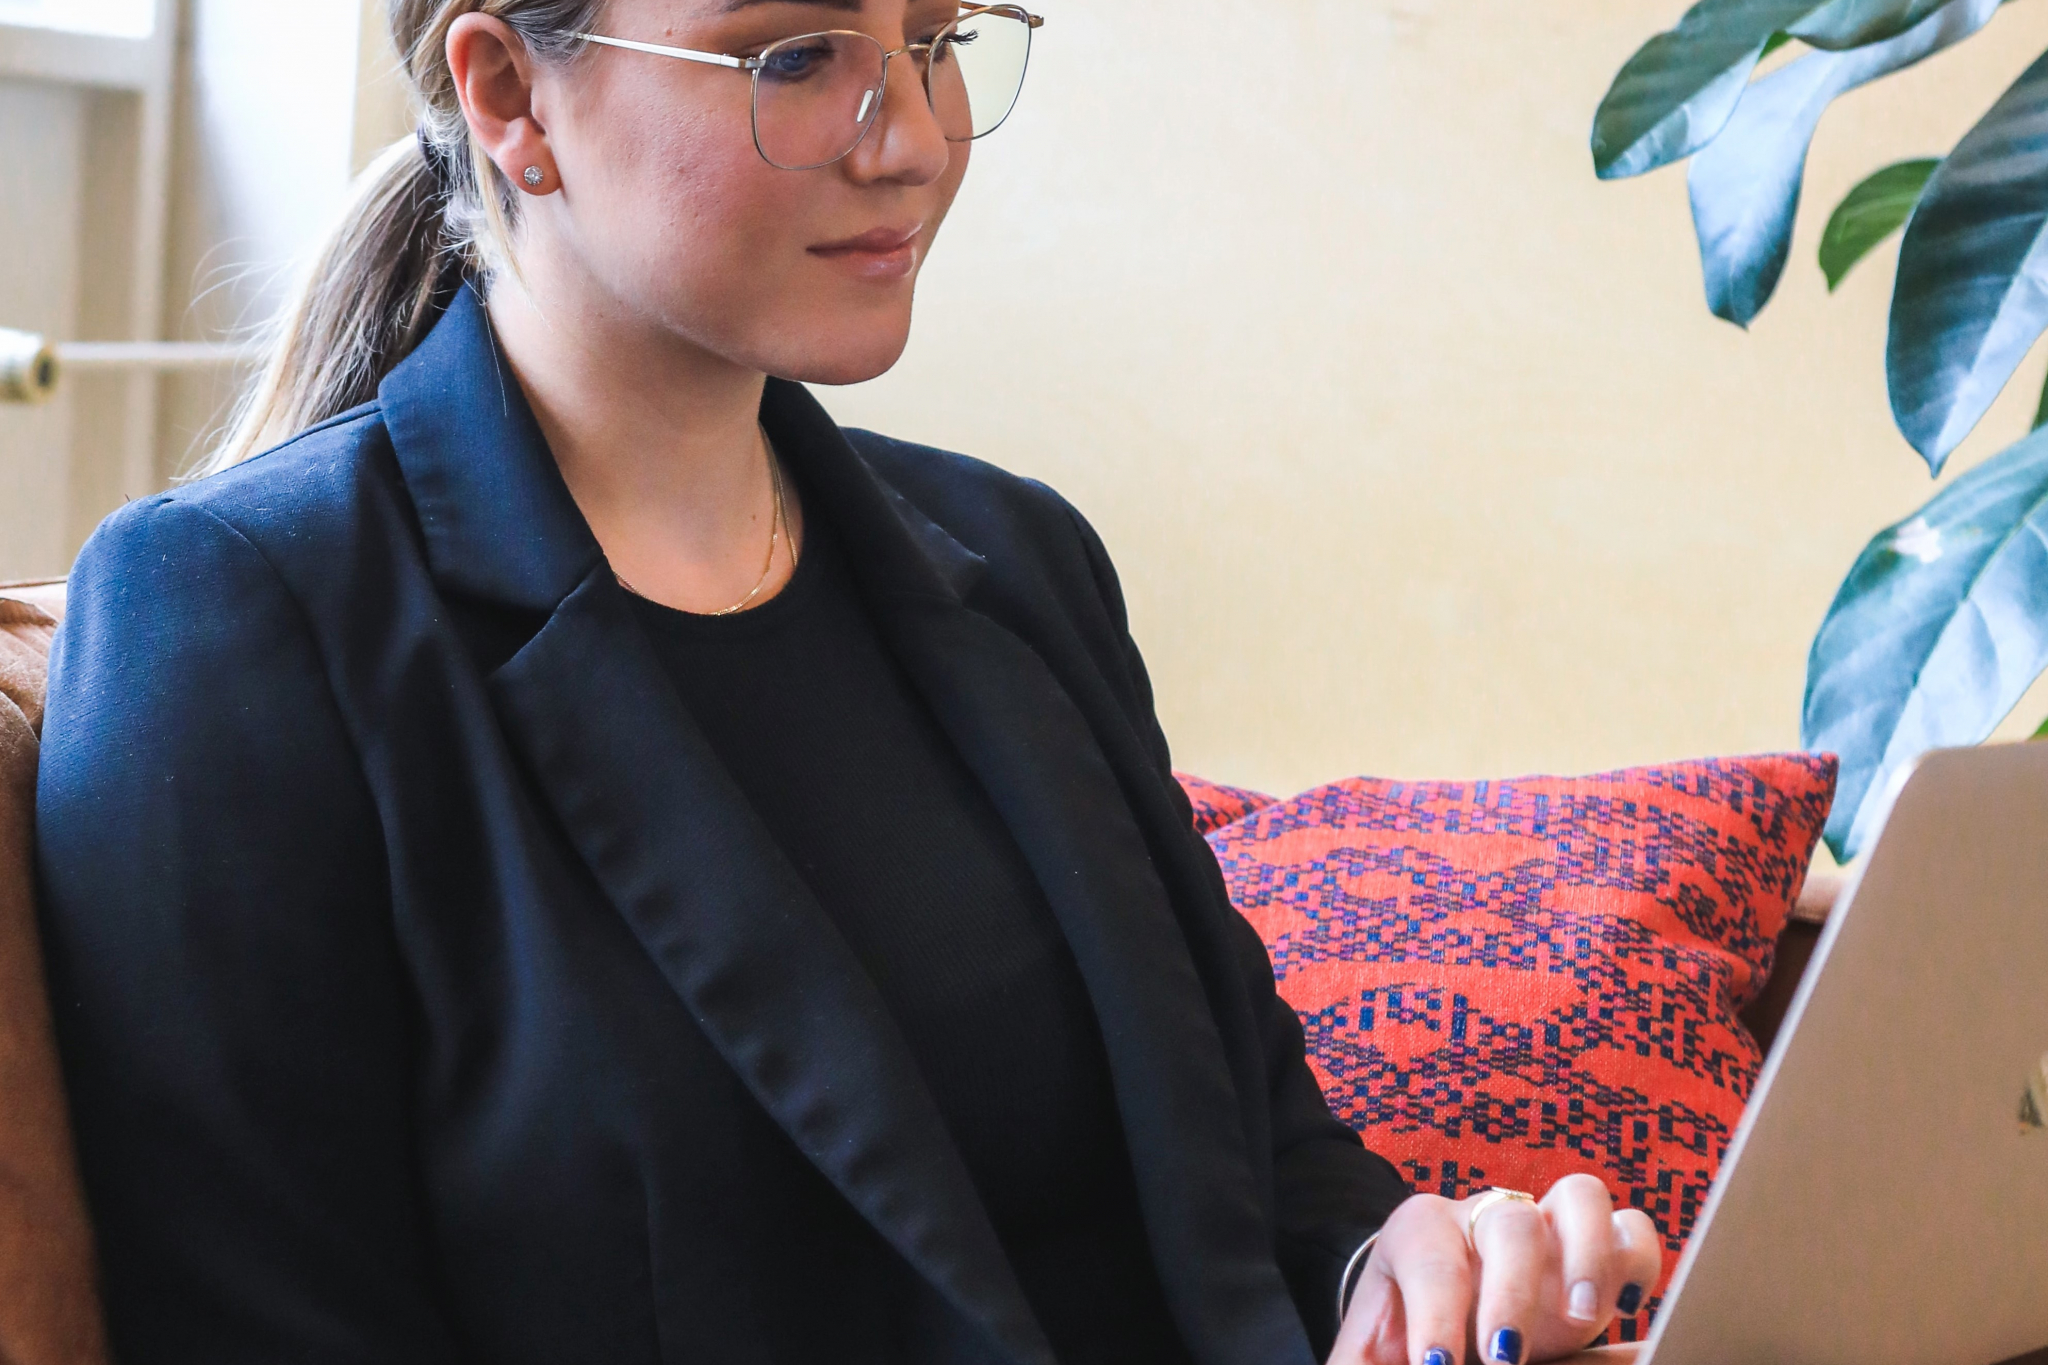 Woman taking part in online interview